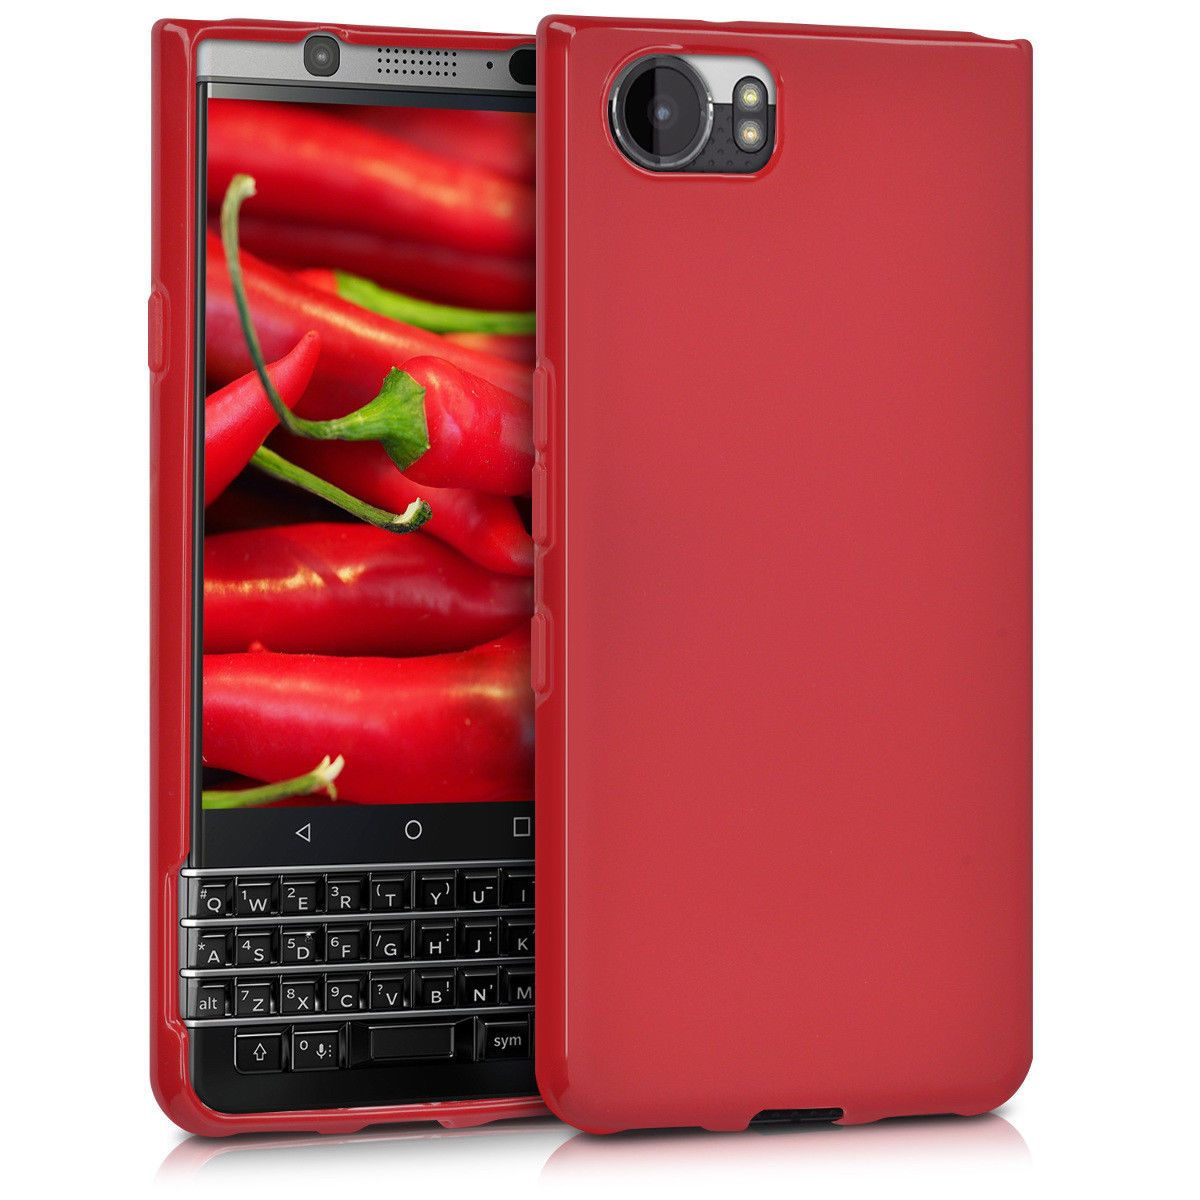 Details About Ultra Slim Soft Gel Tpu Silicone Case Cover Skin For Blackberry Key2 Keyone Products Blackberry Keyone Blackberry Matte Red